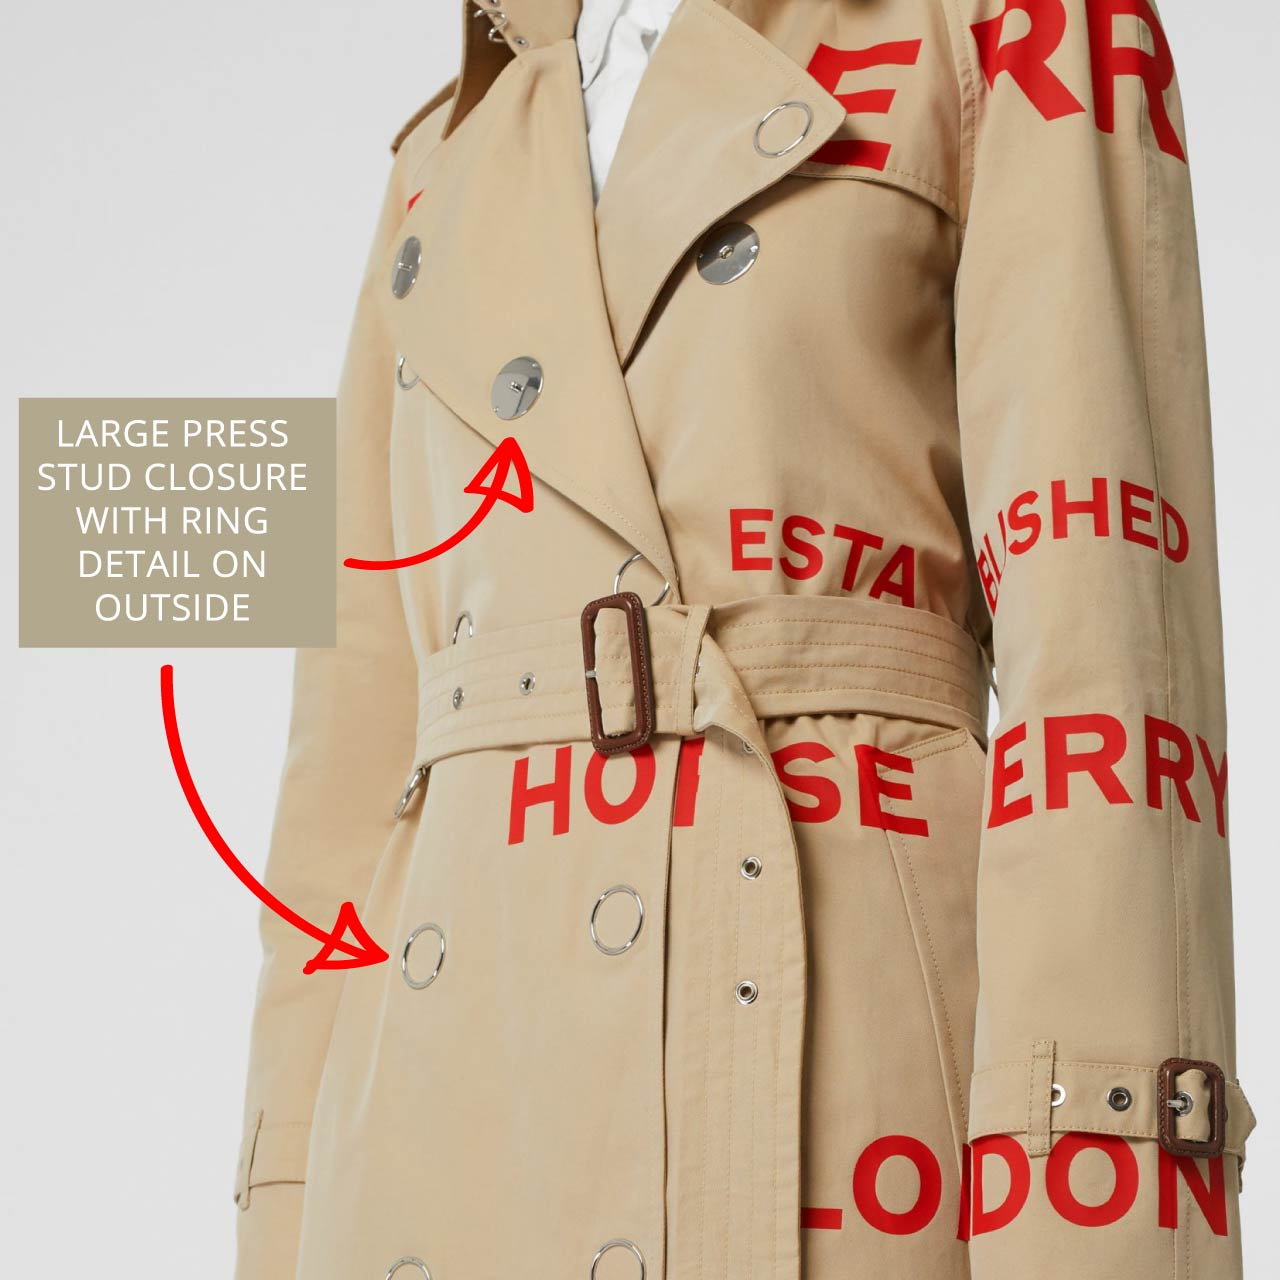 Large press studs with ring backing on Burberry trench coat. The Cutting Class.